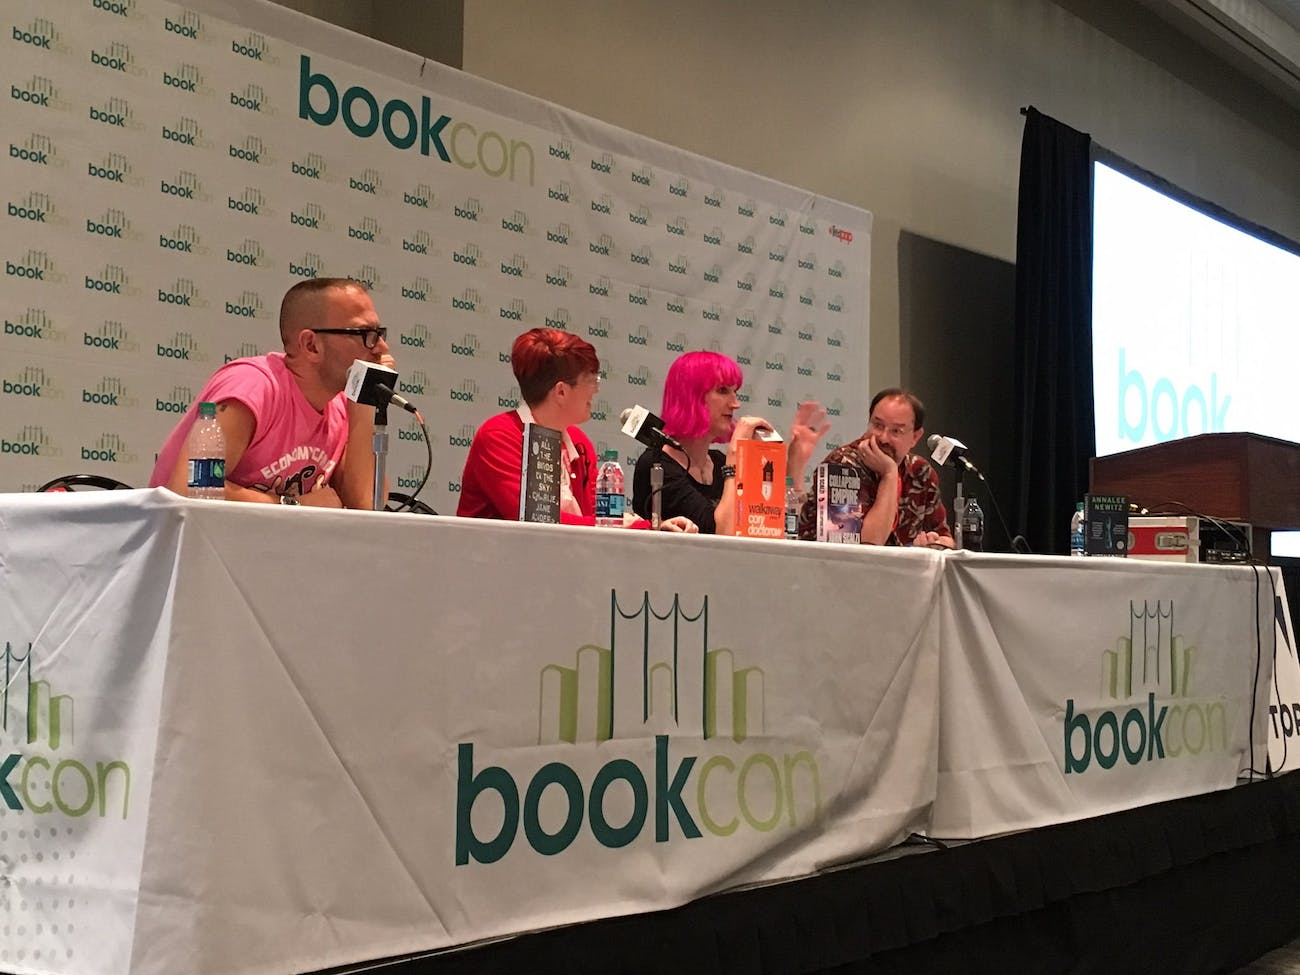 Cory Doctorow, Annalee Newitz, Charlie Jane Anders, and John Scalzi at Book Con